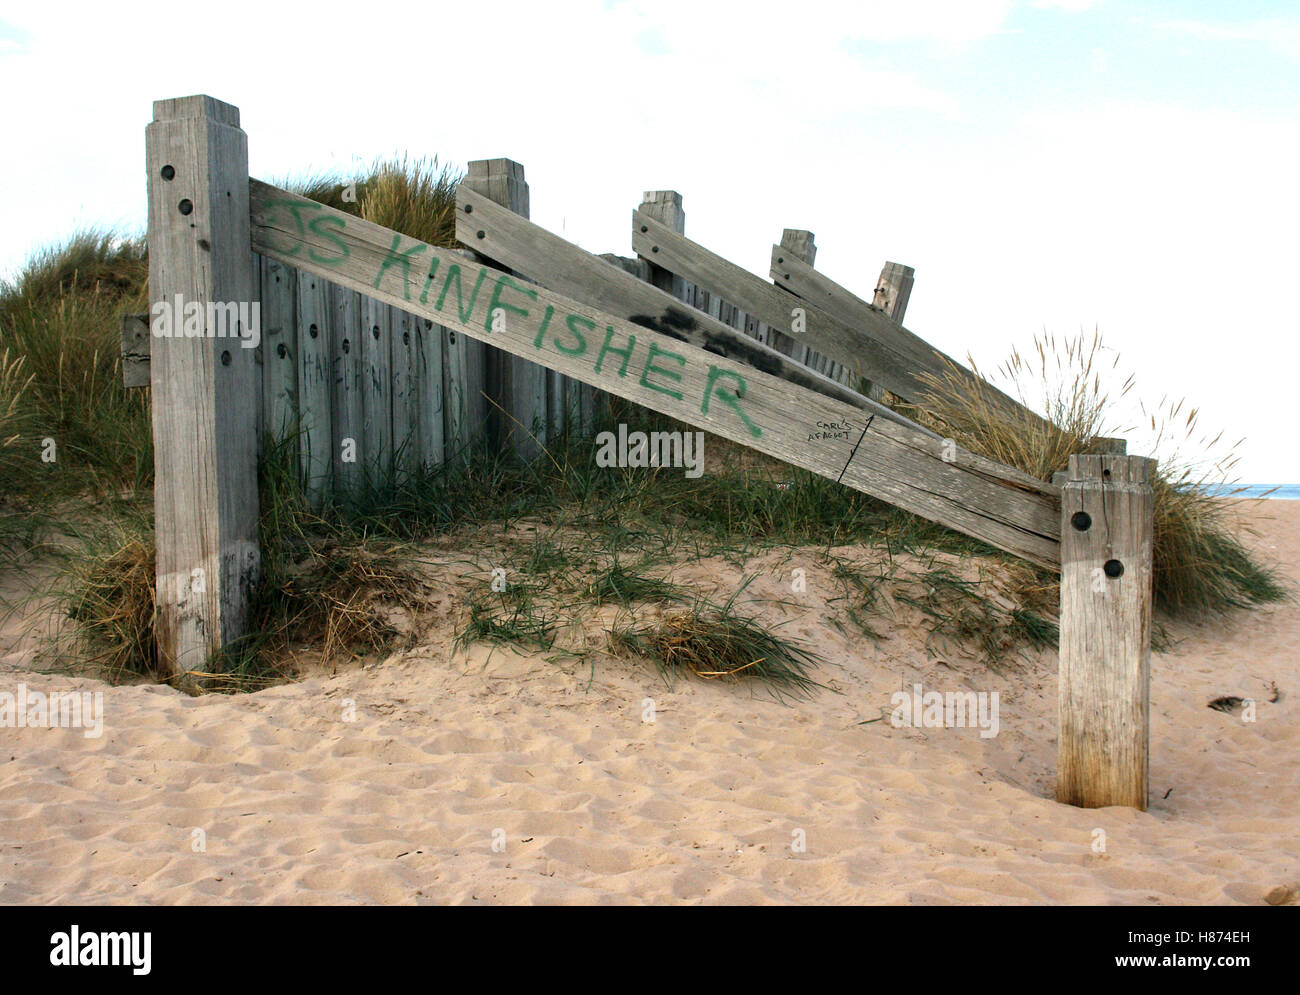 Graffiti marked sand dune defences built on the beach at Kinloss, North East Scotland to minimise North Sea wind - Stock Image